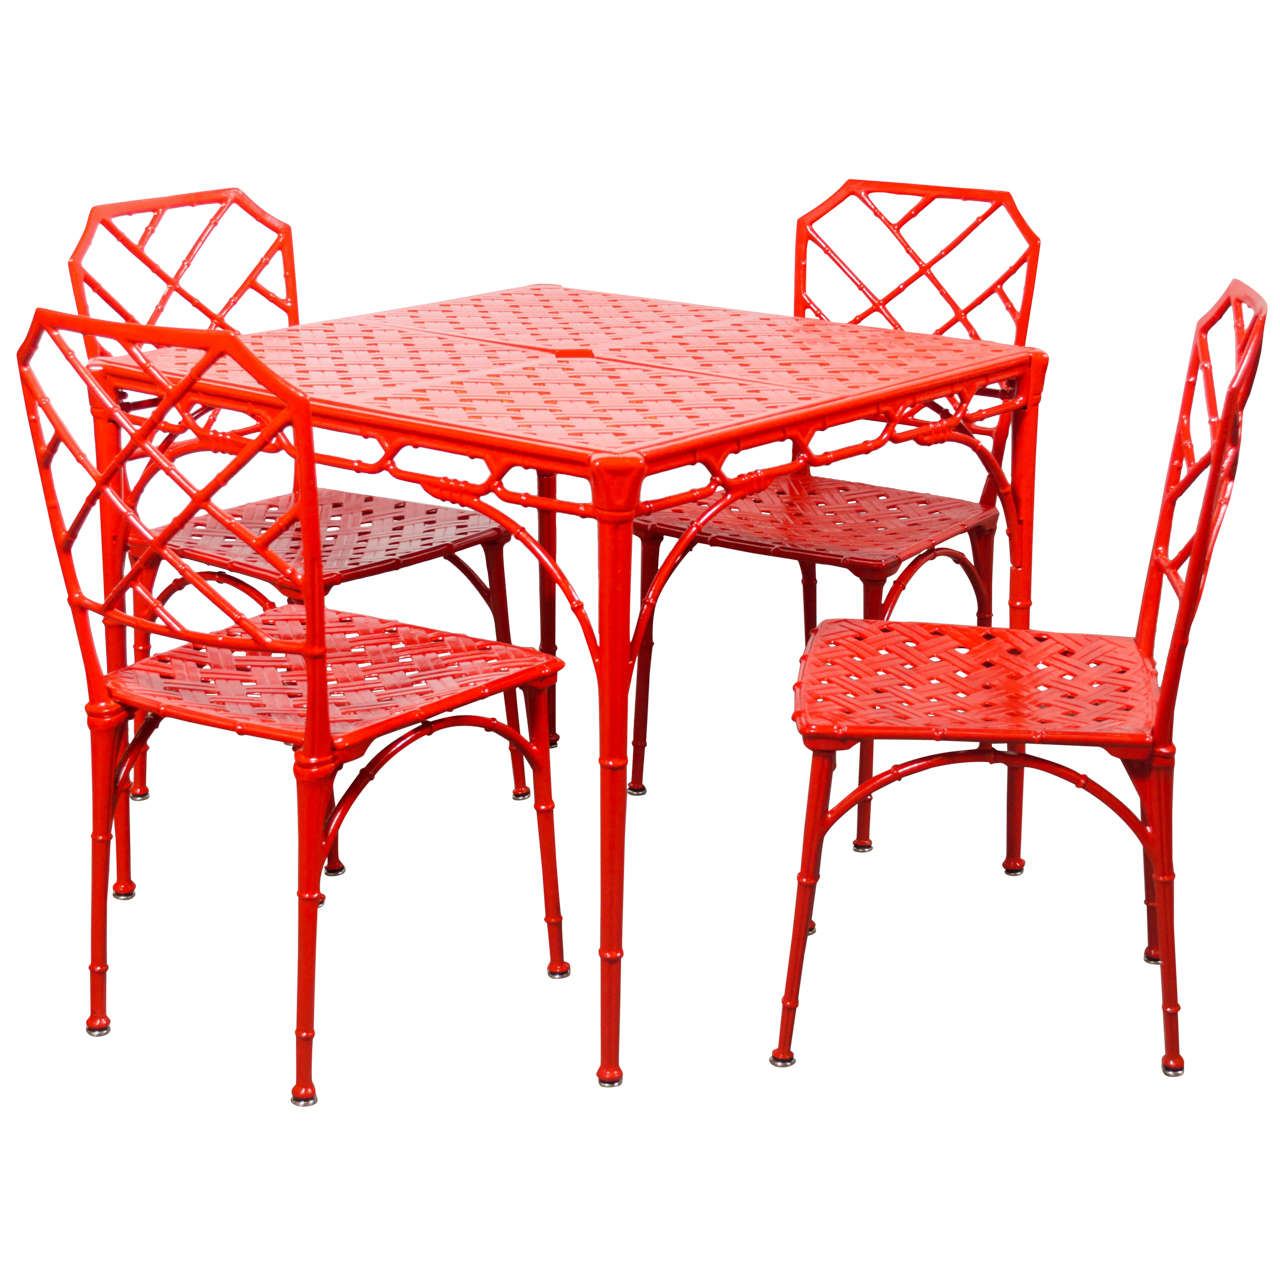 Hollywood Regency Style Faux Bamboo Dining Or Patio Set In